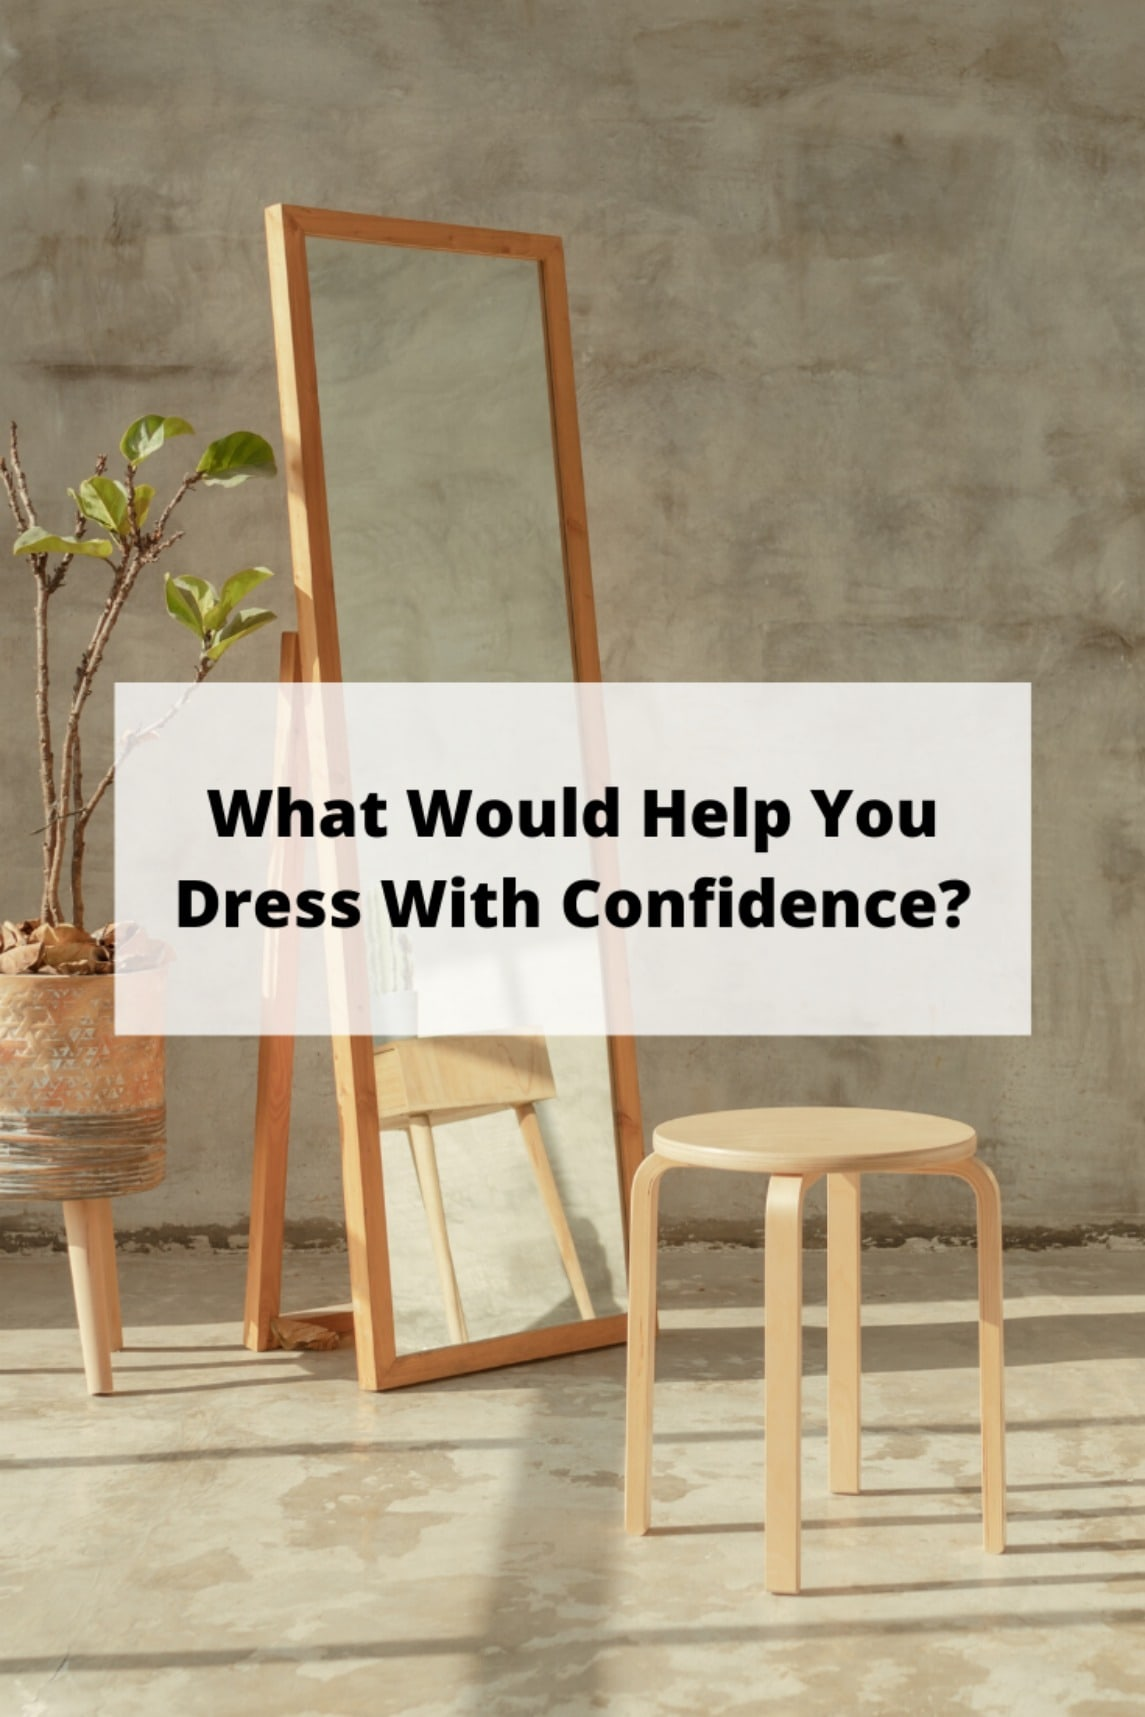 What Would Help You Dress With Confidence?